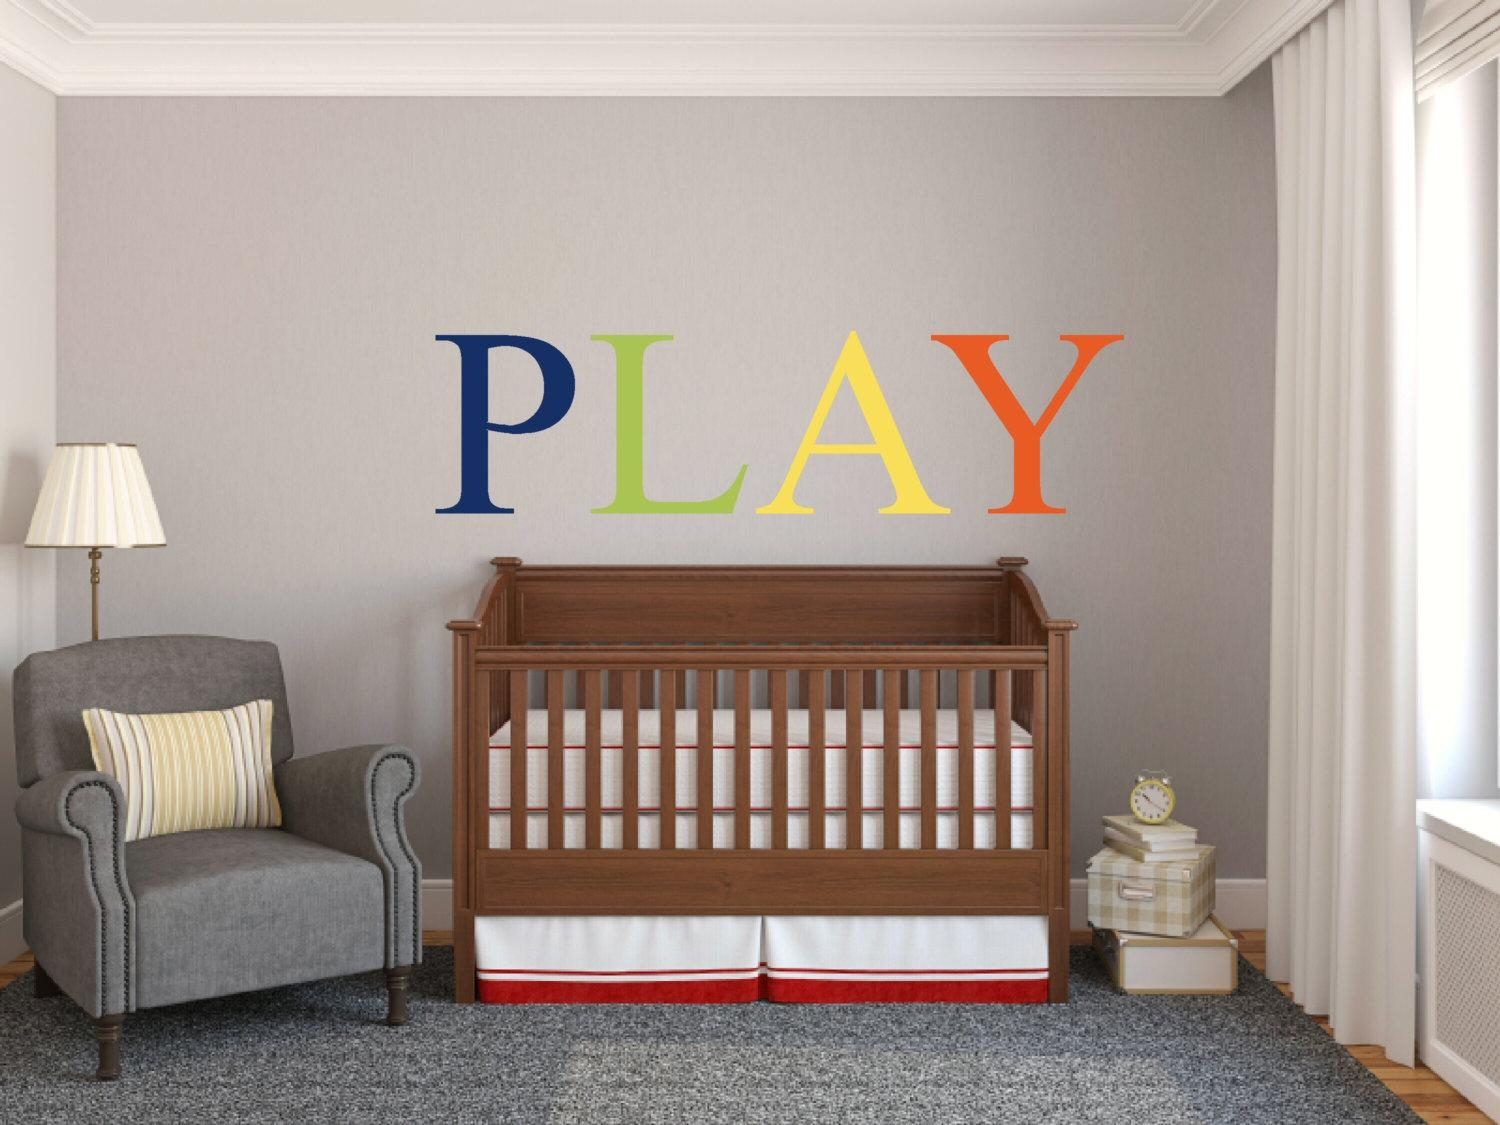 Play Wall Decal Play Wall Vinyl Playroom Preschool Inside Preschool Classroom Wall Decals (Image 13 of 20)